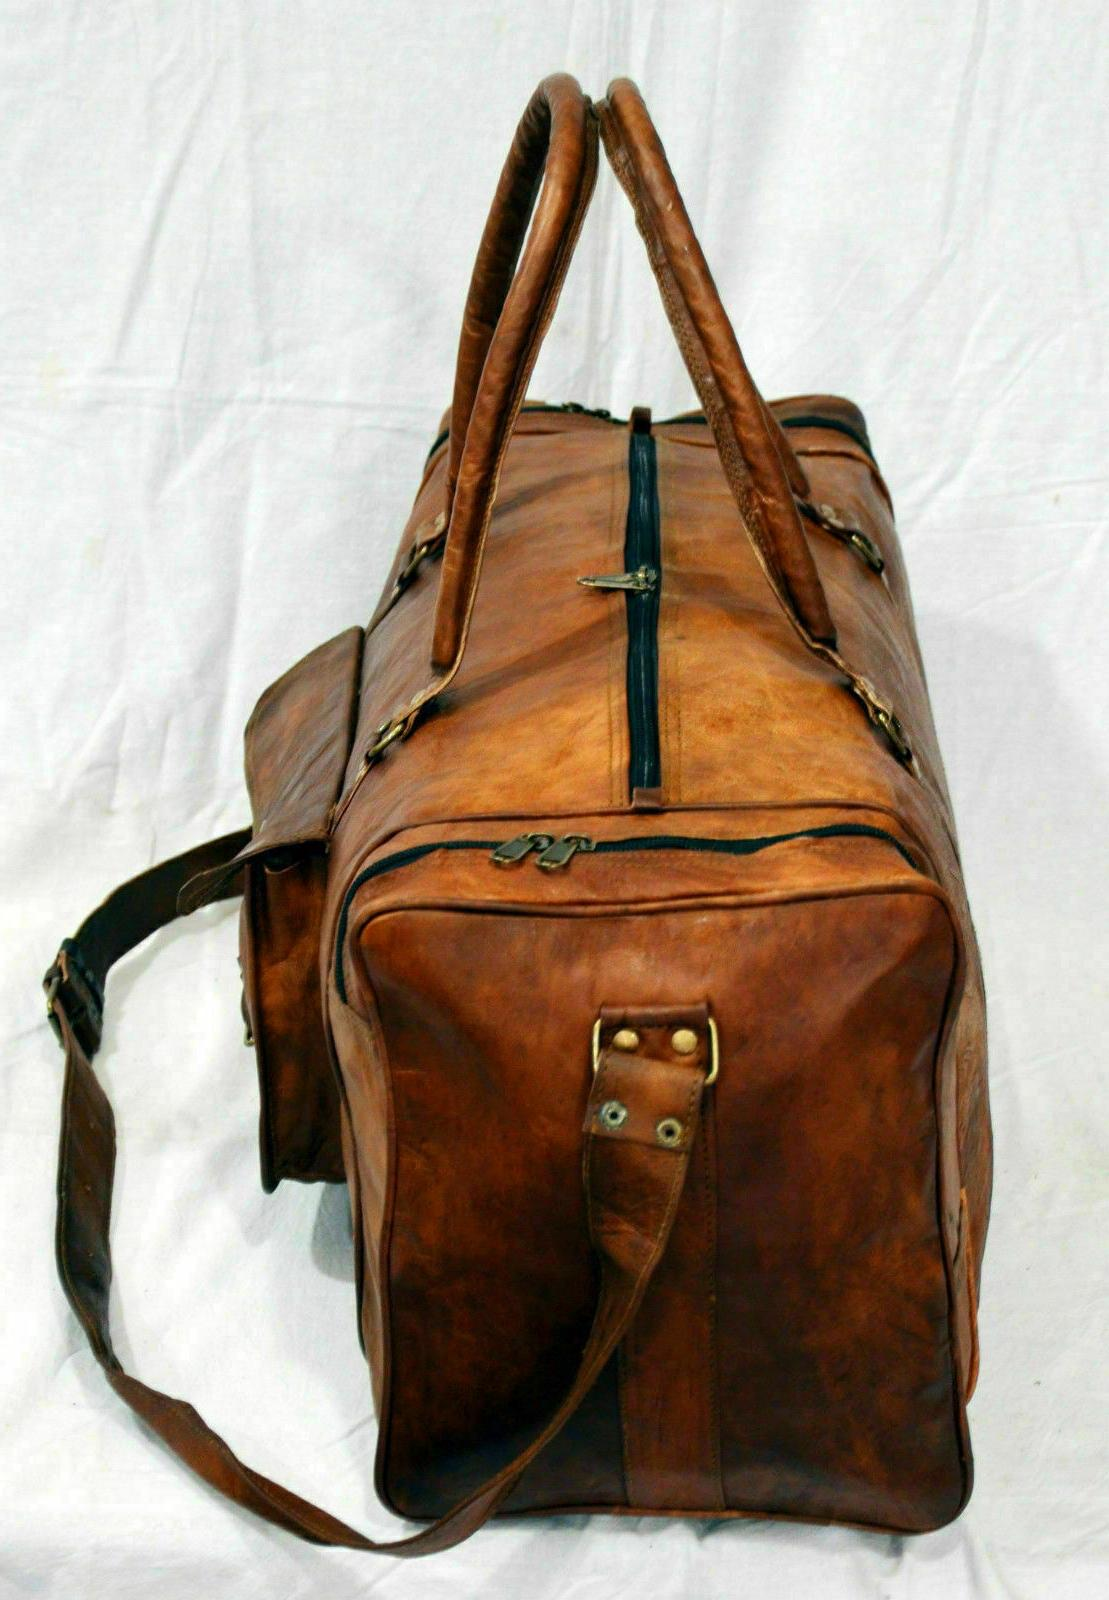 New Hand-Crafted Genuine Brown Travel Duffel Luggage Bag